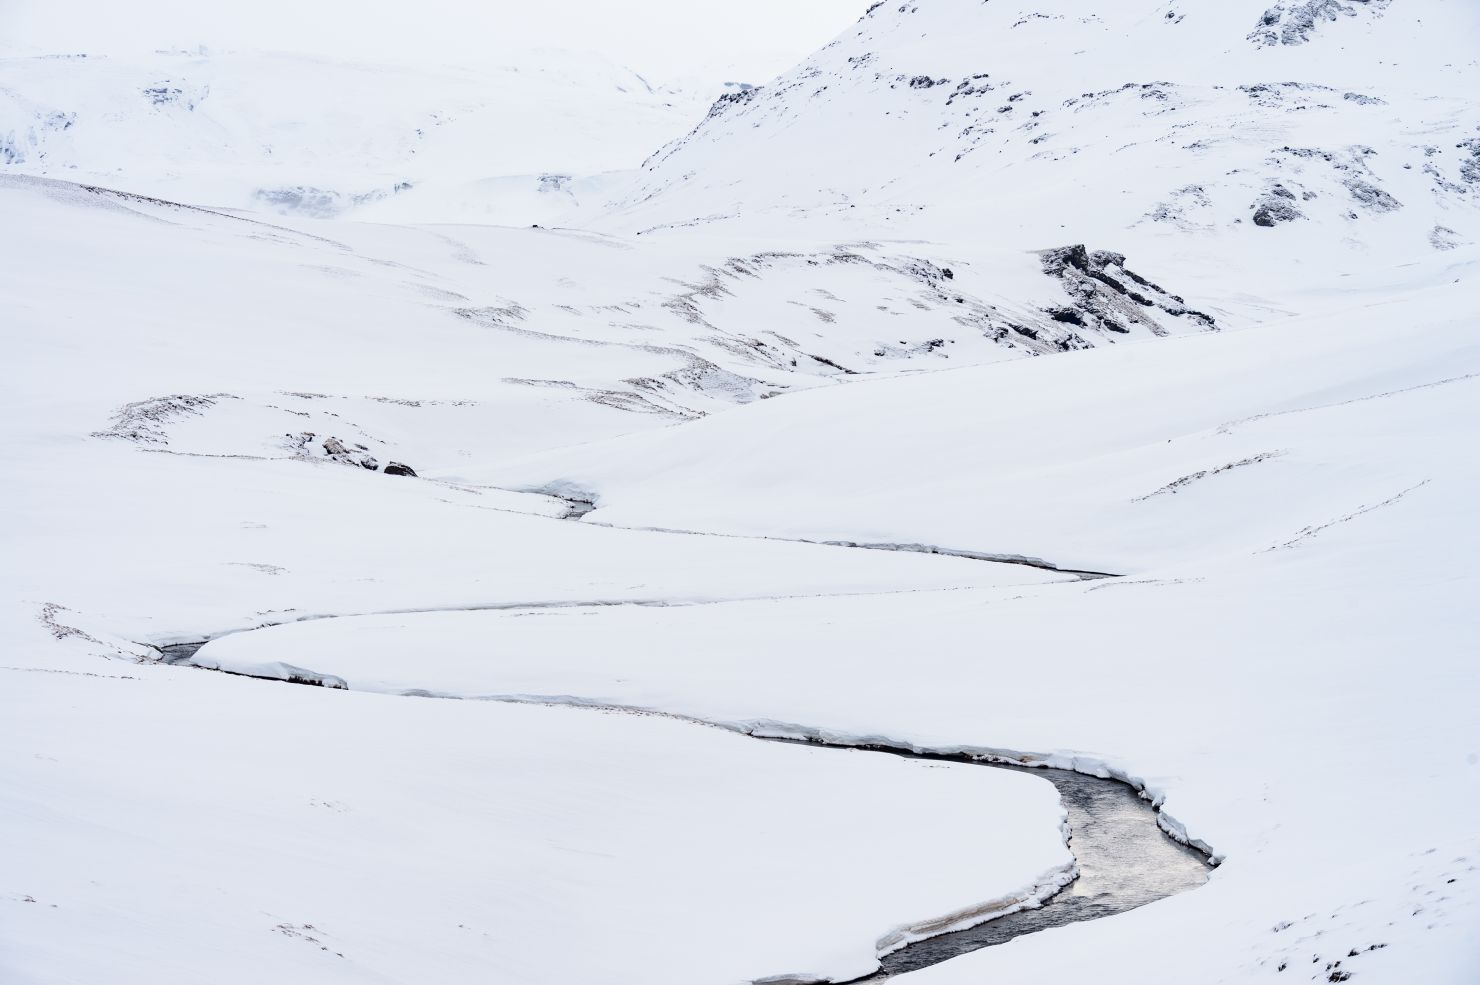 River meandering through the snow